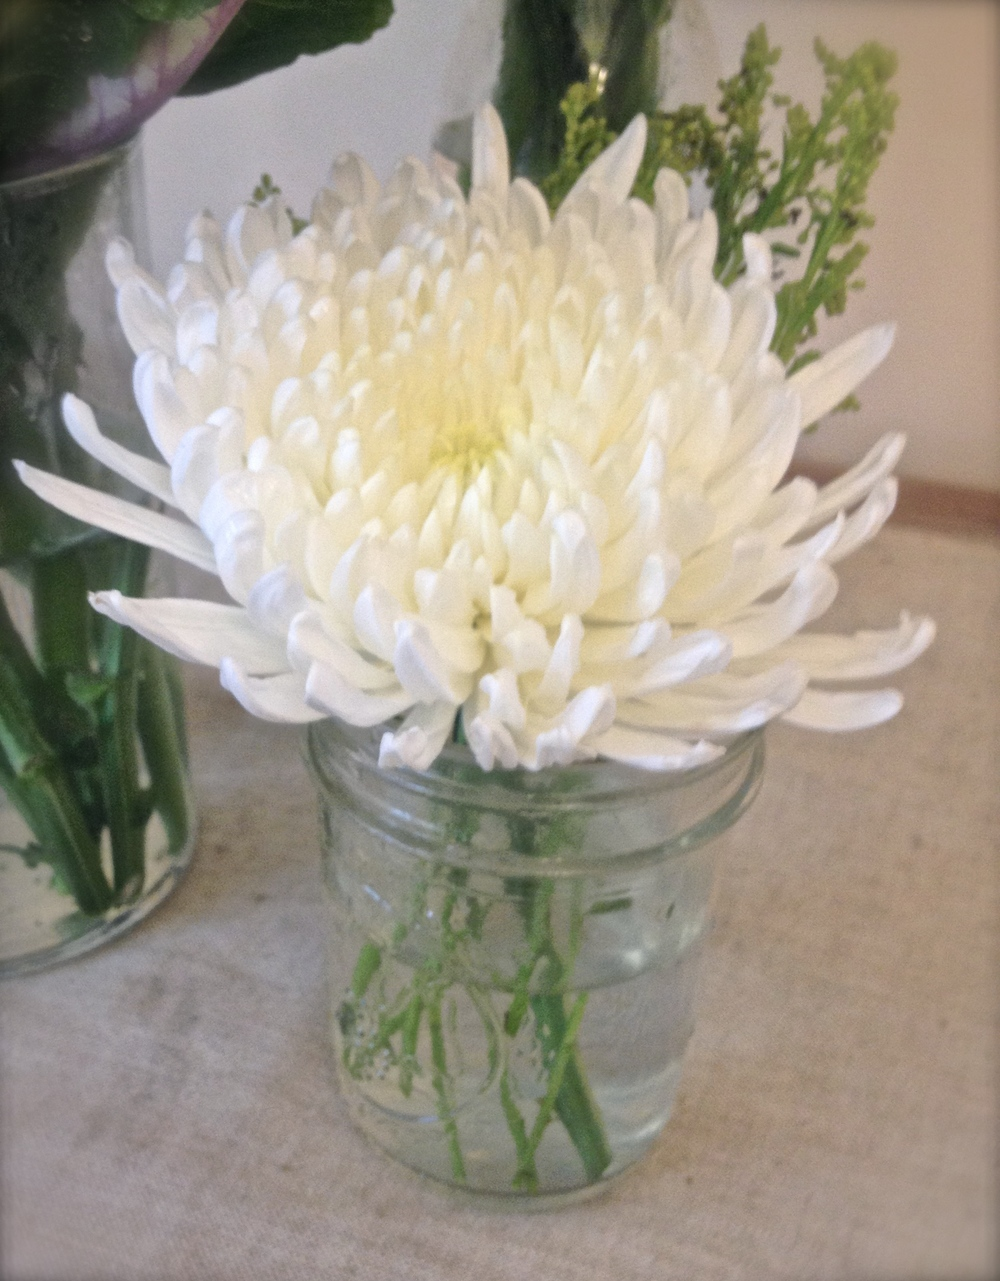 A single chrysanthemum enhances any table